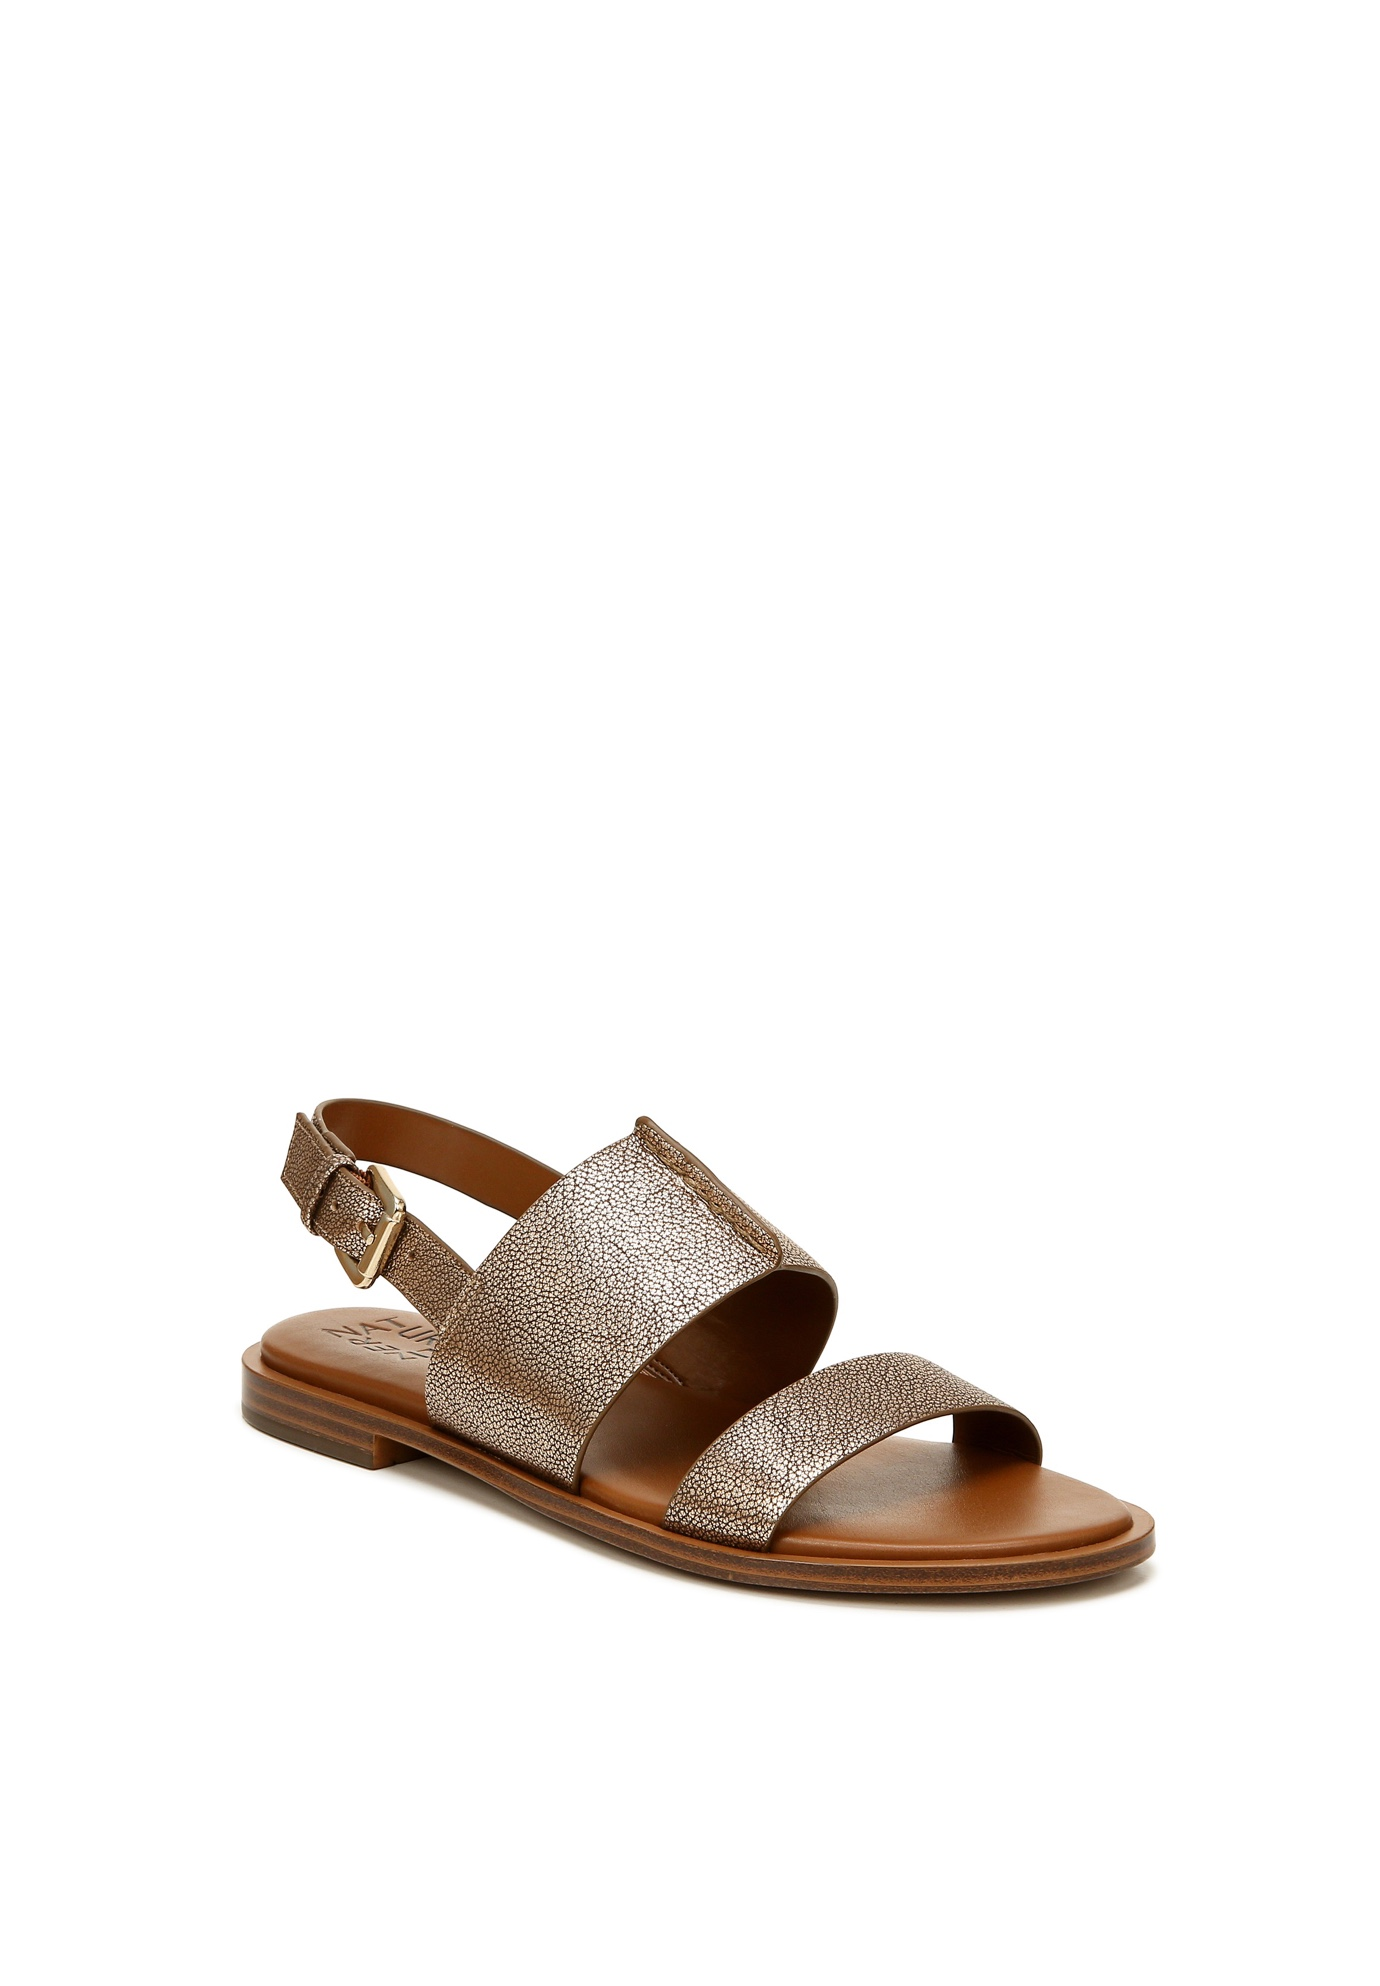 Fairfax Sandal by Naturalizer,